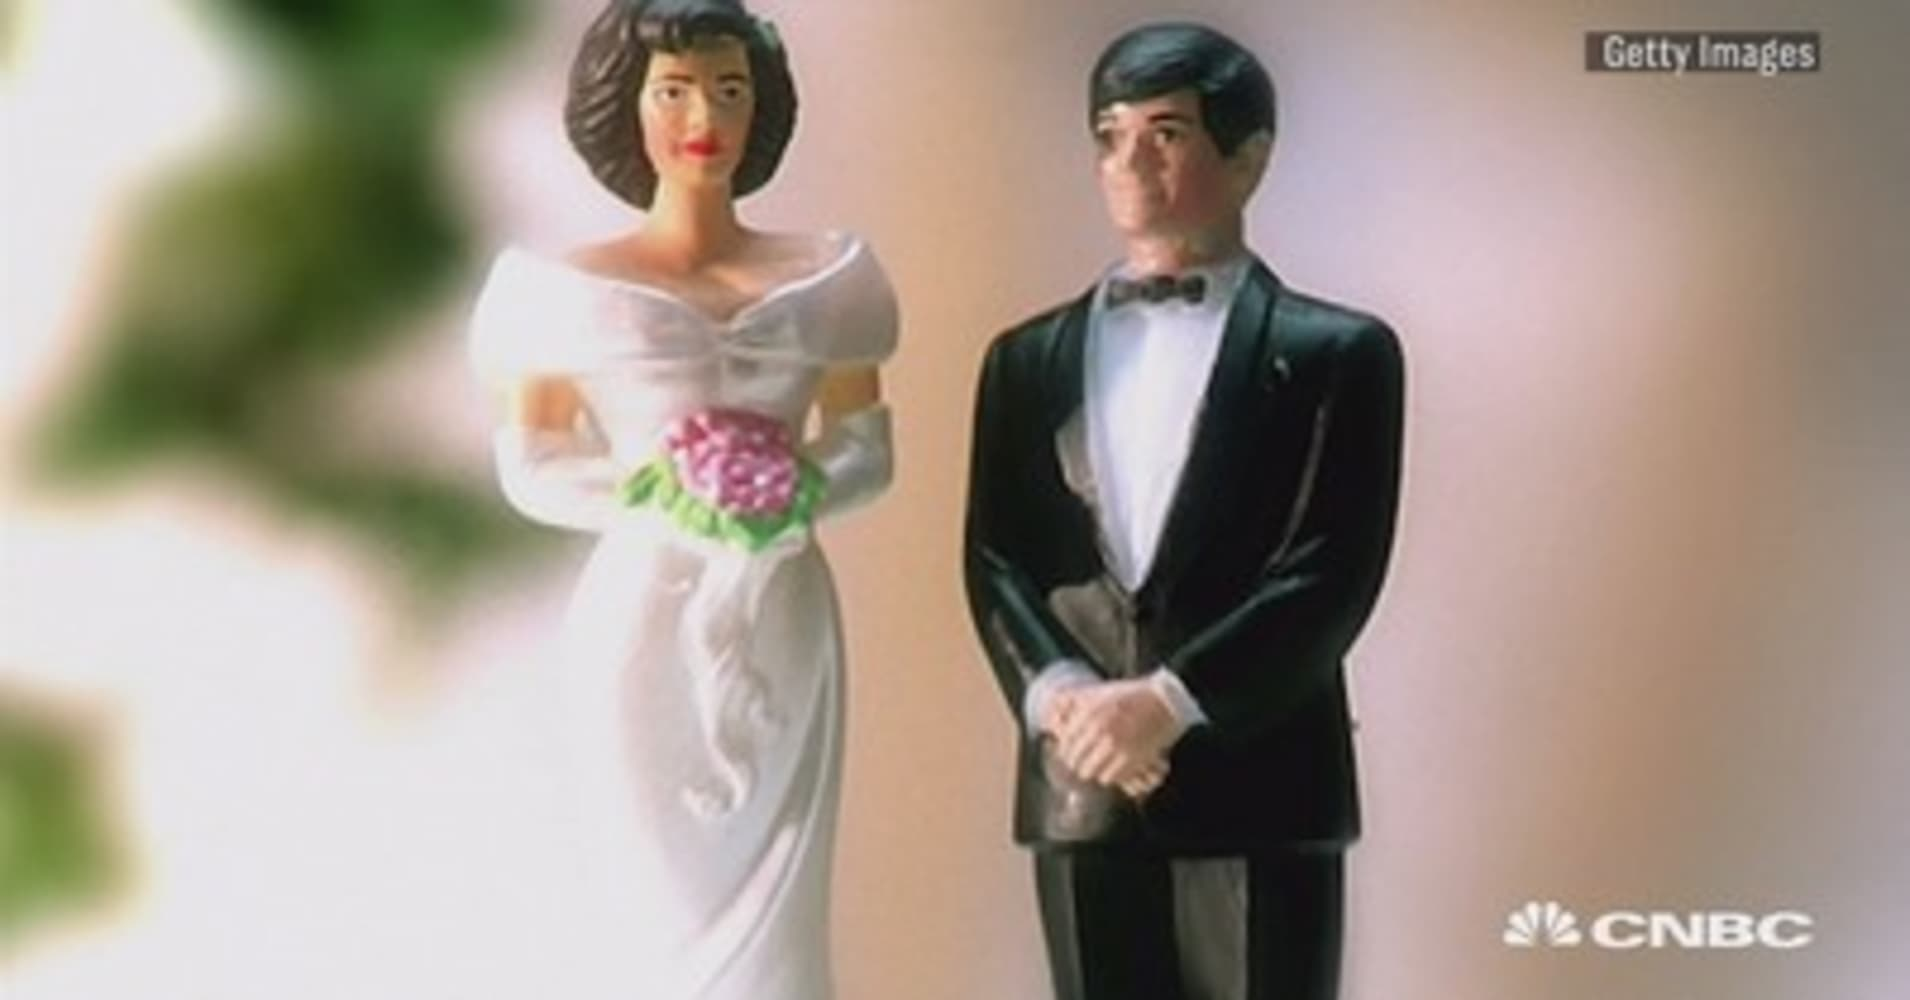 2018 could be a big year for divorce thanks to Trump's new tax plan